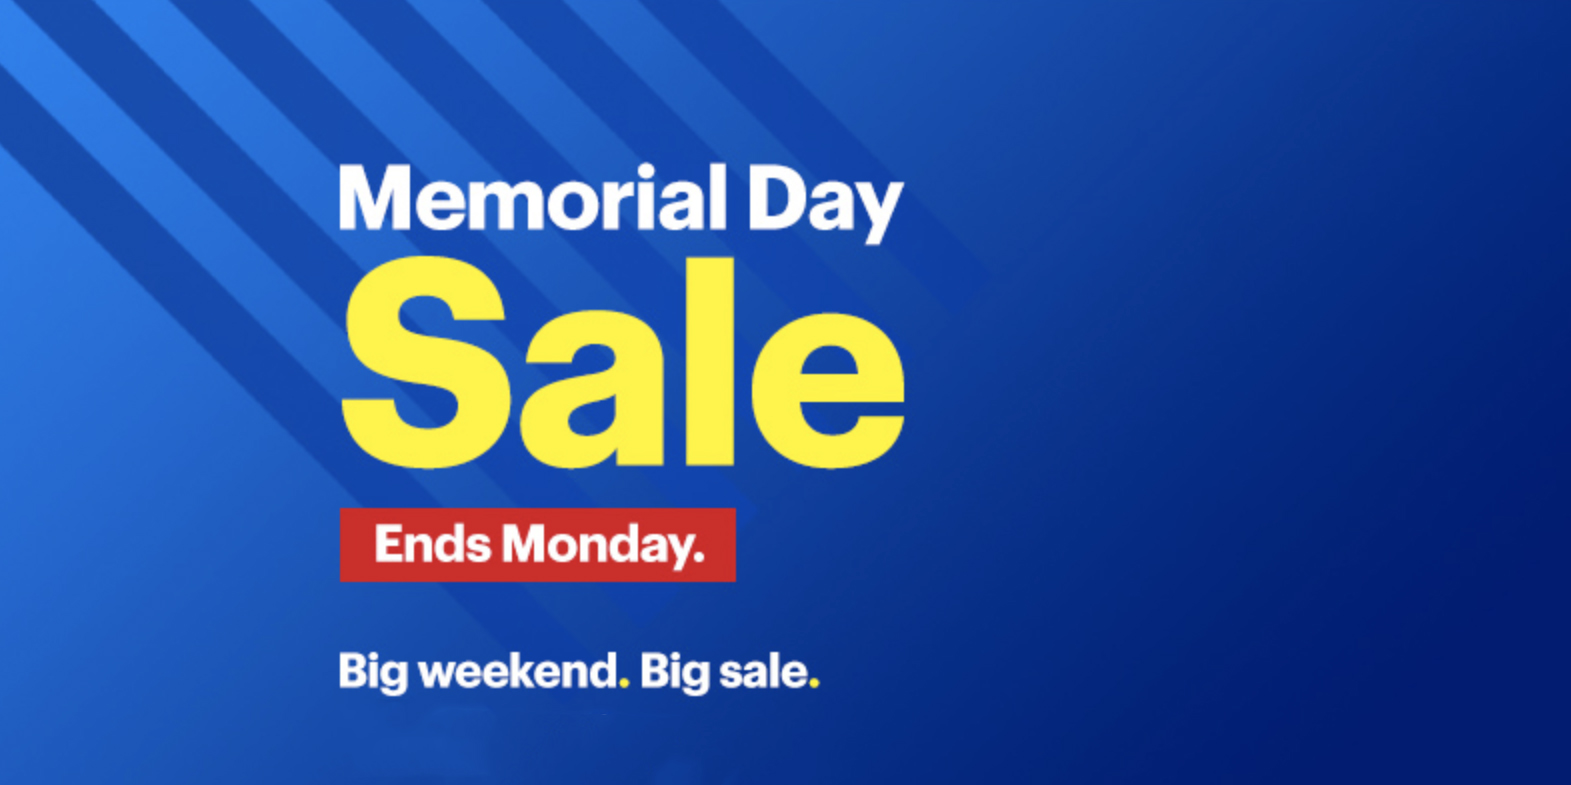 Best Buy Memorial Day Sale Philips Hue More In Today S Deals